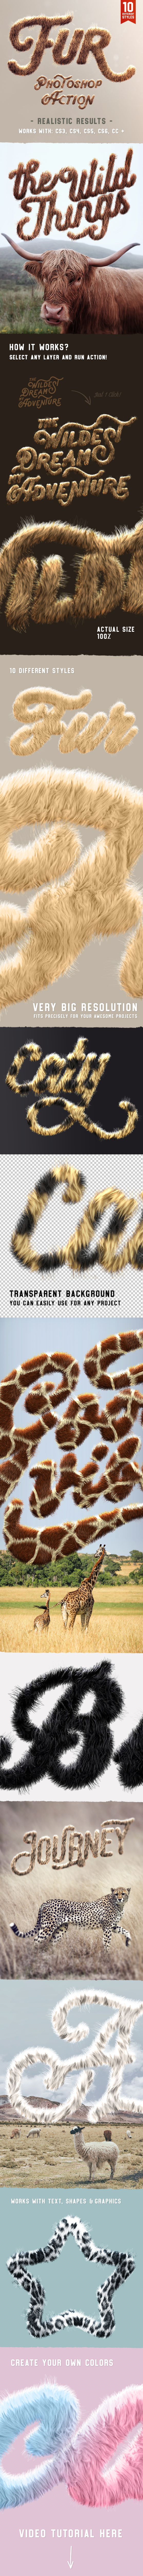 Realistic Fur Photoshop Actions - Utilities Actions